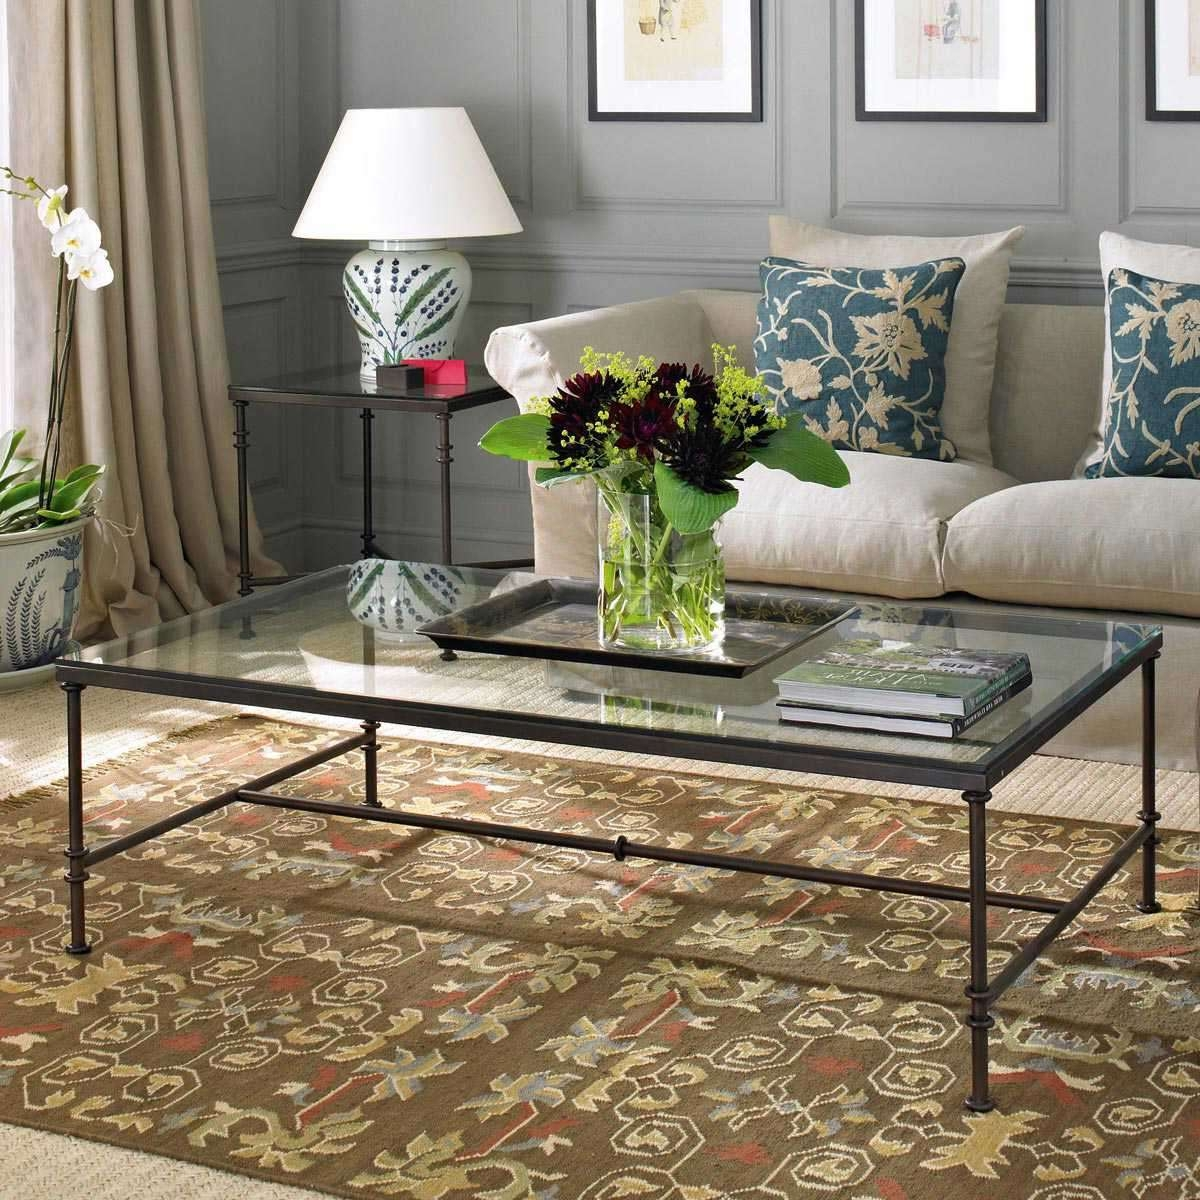 Fashionable Metal Glass Coffee Tables With Regard To Metal And Glass Coffee Table (View 6 of 20)